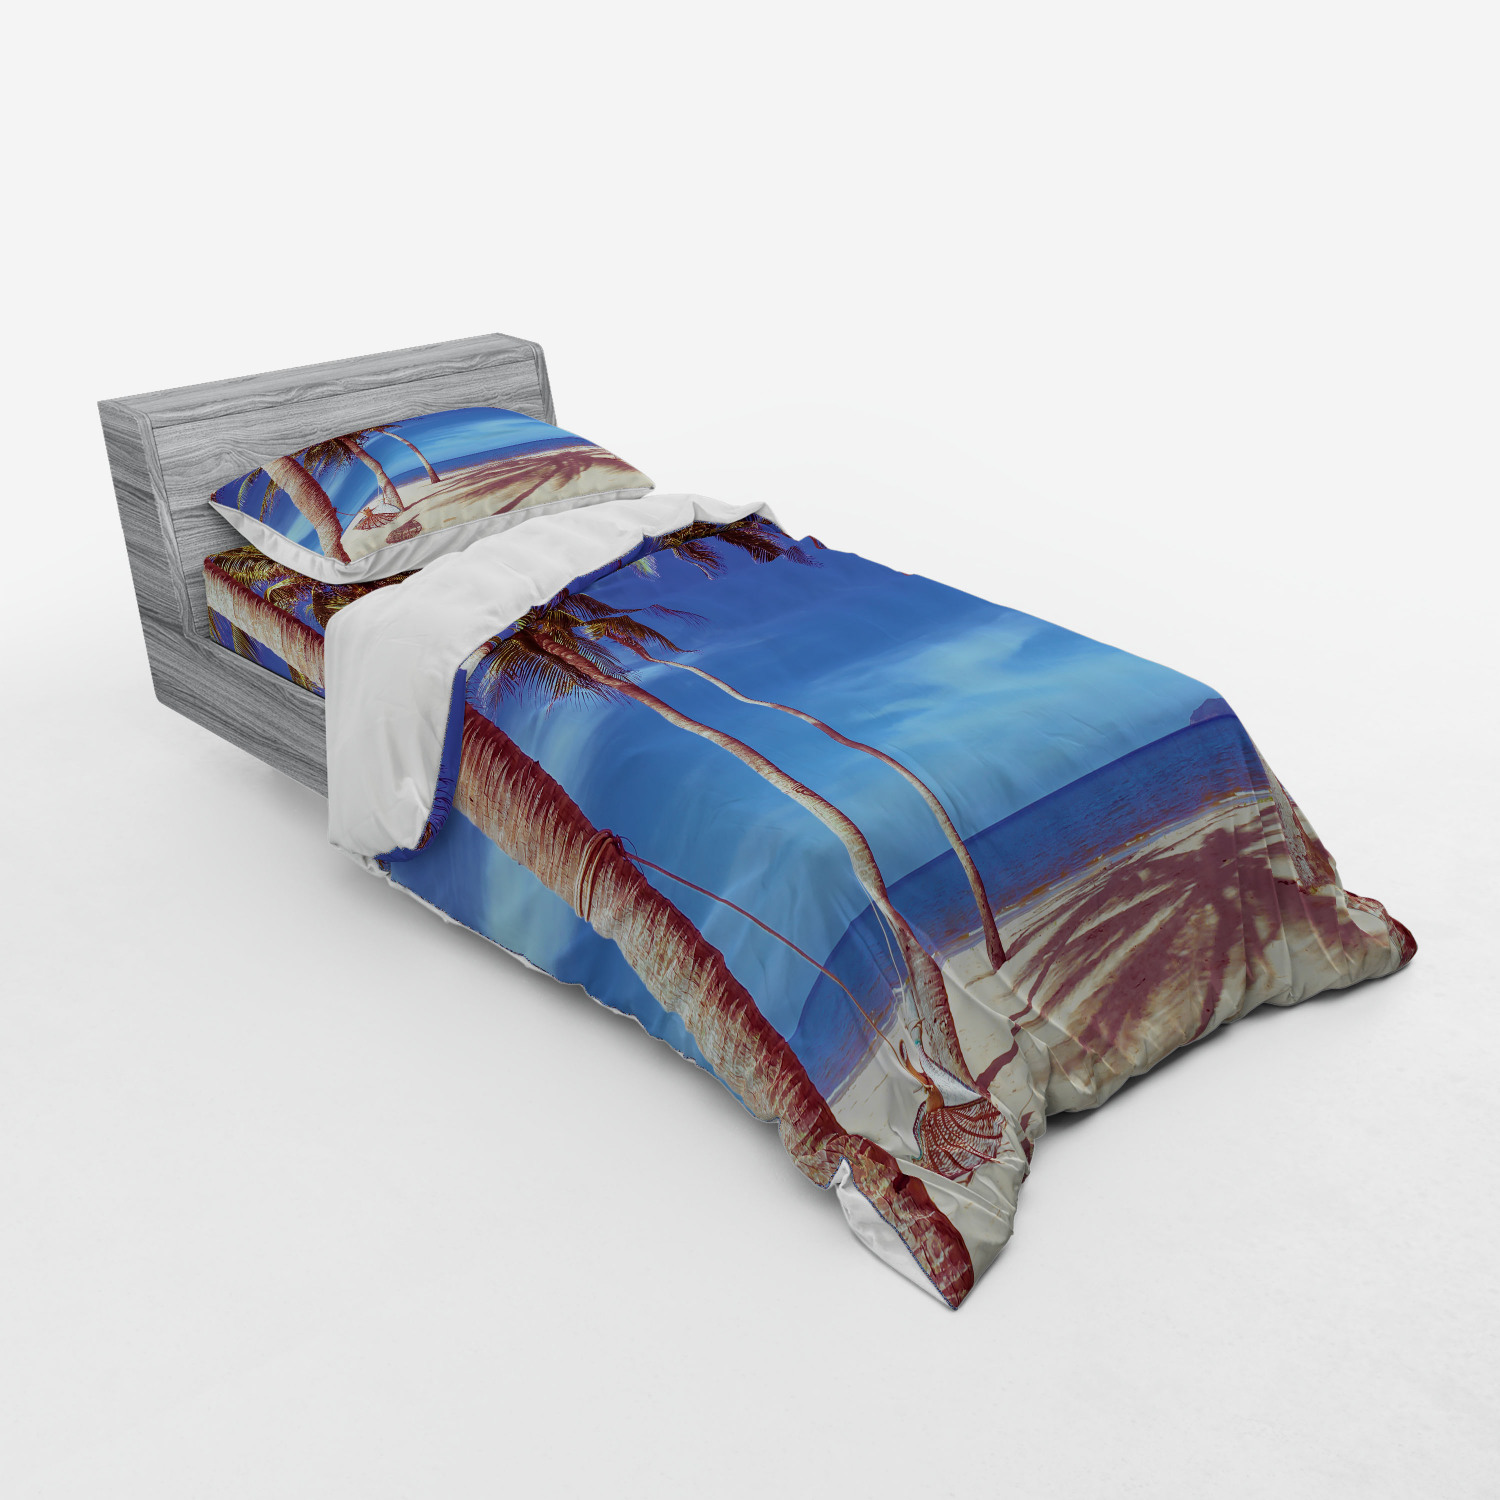 thumbnail 129 - Ambesonne Summer Bedding Set Duvet Cover Sham Fitted Sheet in 3 Sizes